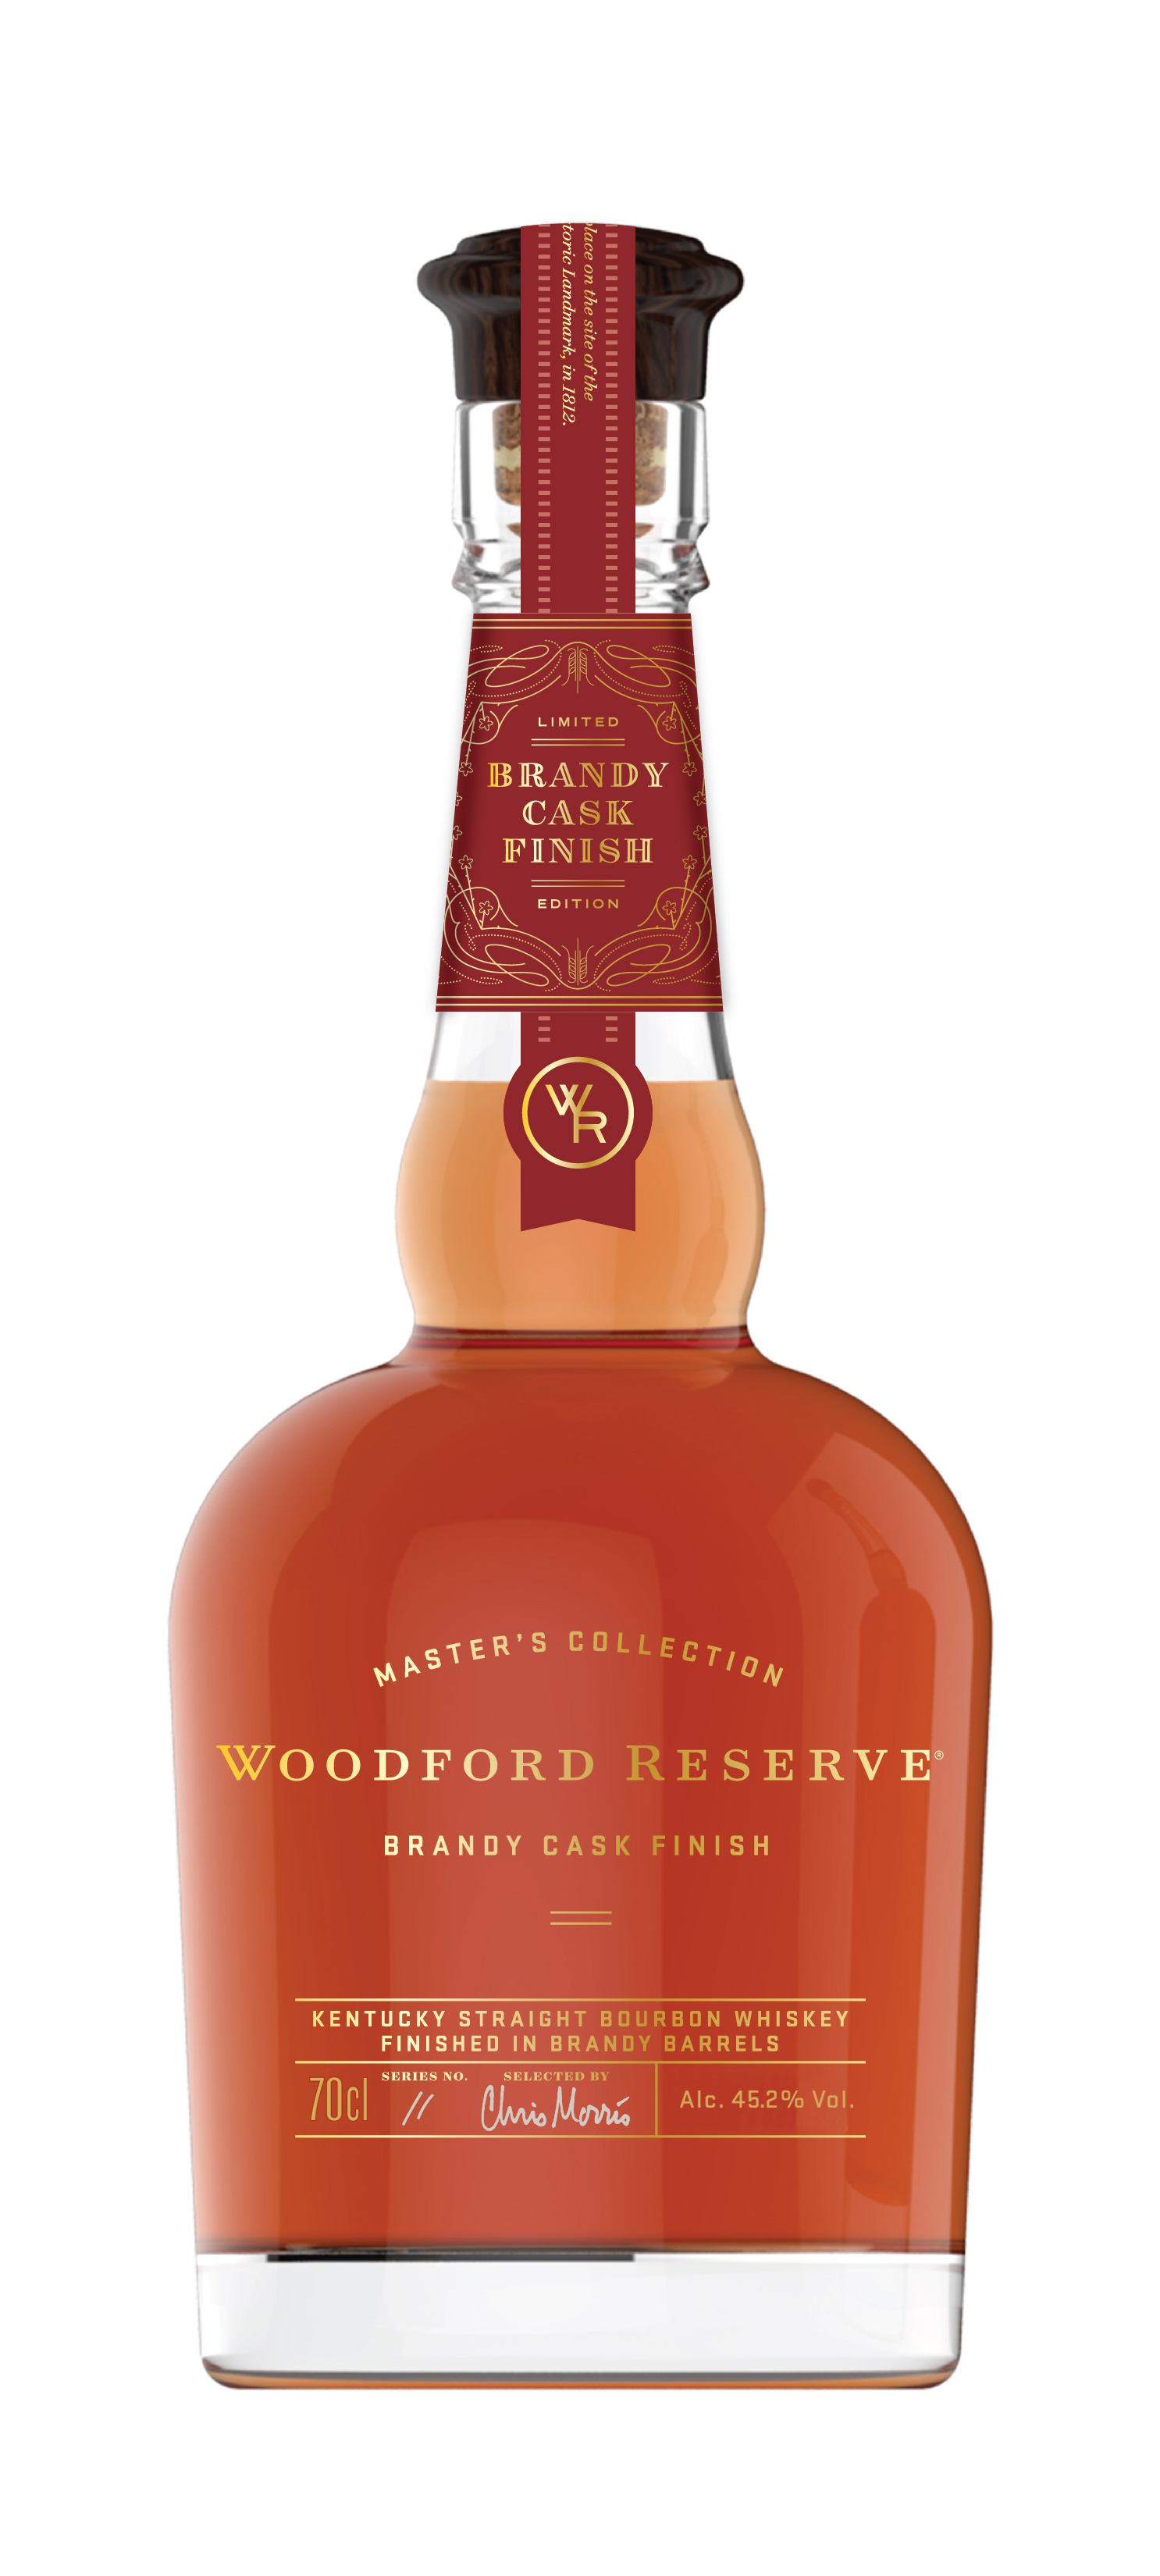 Woodford Reserve Master Collection Brandy Cask Finish 45.2%